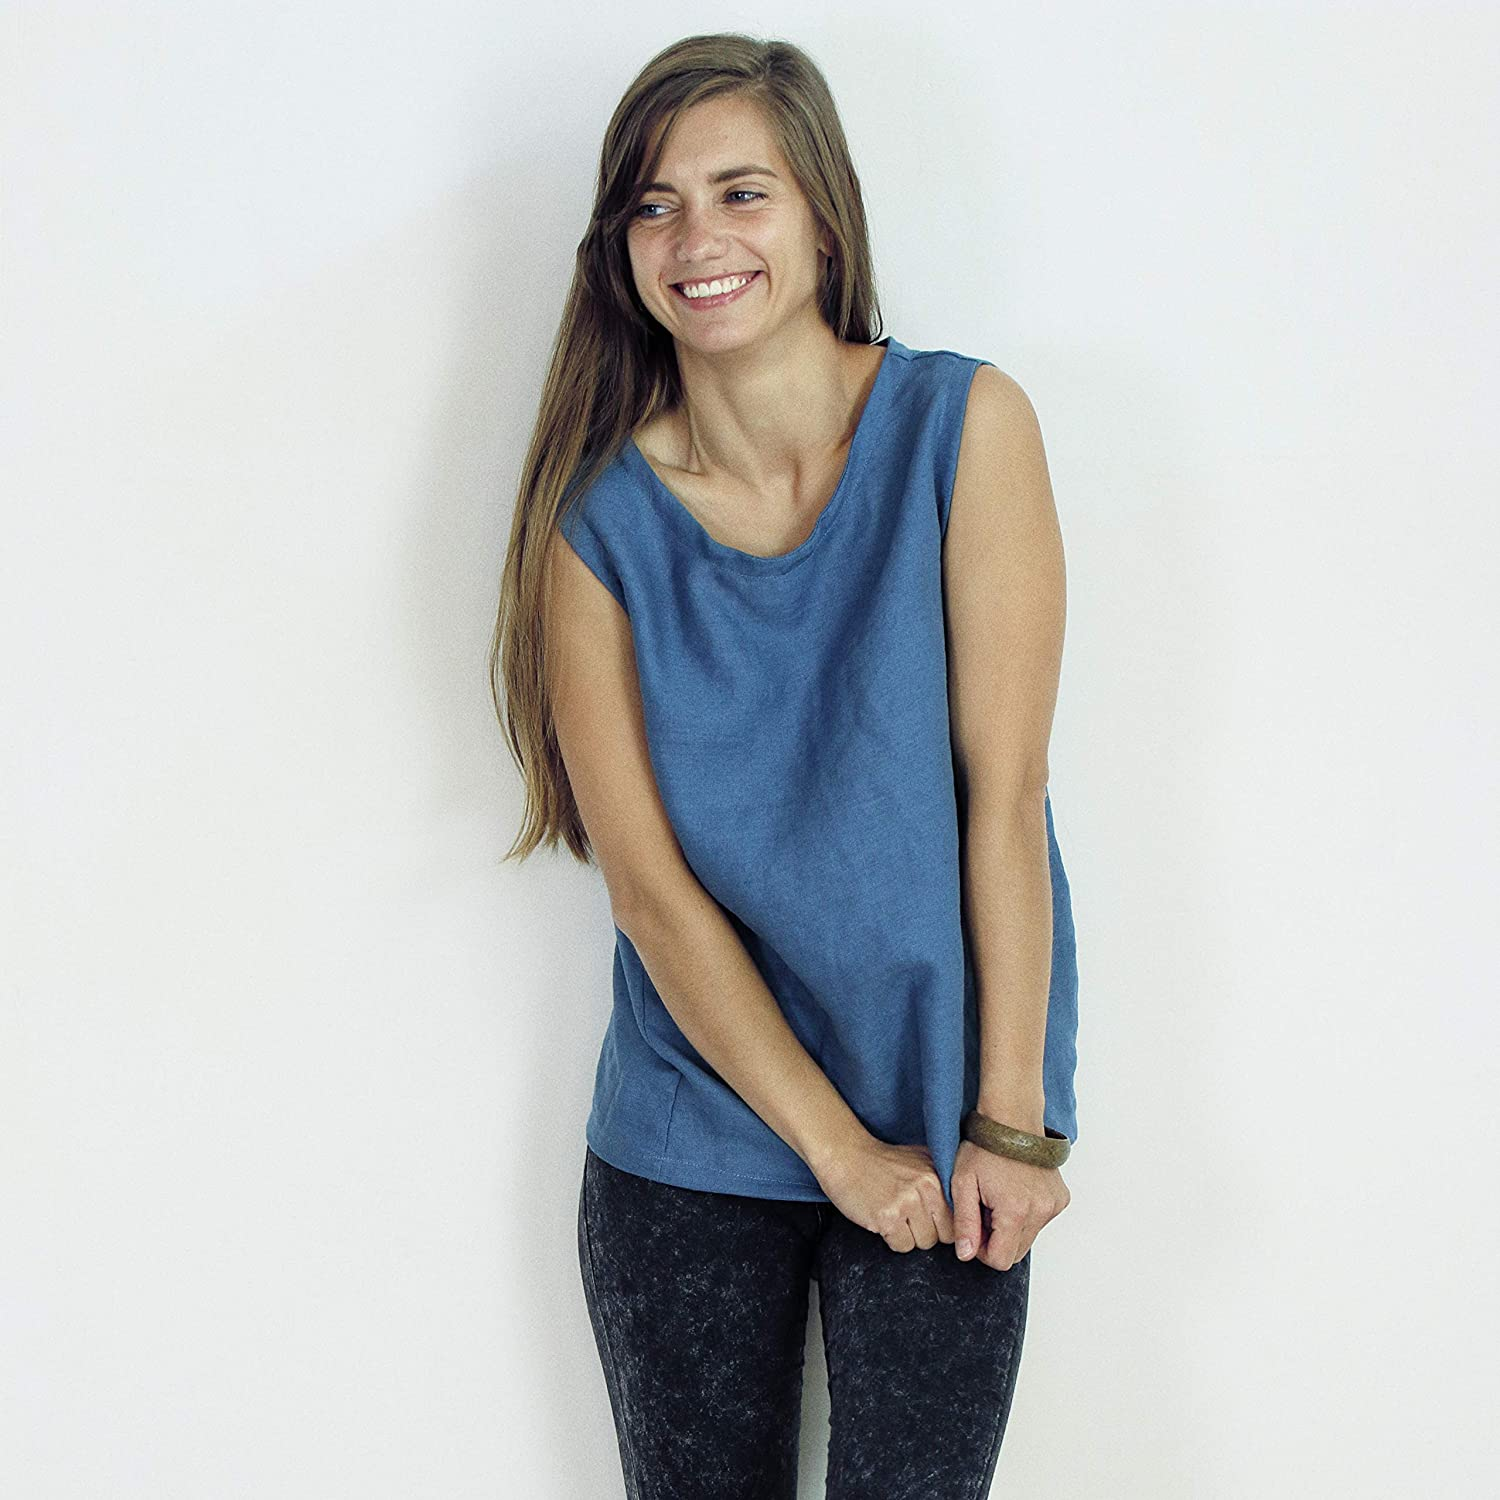 Linen Top Natural  Washed Linen Blouse  Sleeveless Linen Shirt  Basic Linen Top  Linen Tank Top